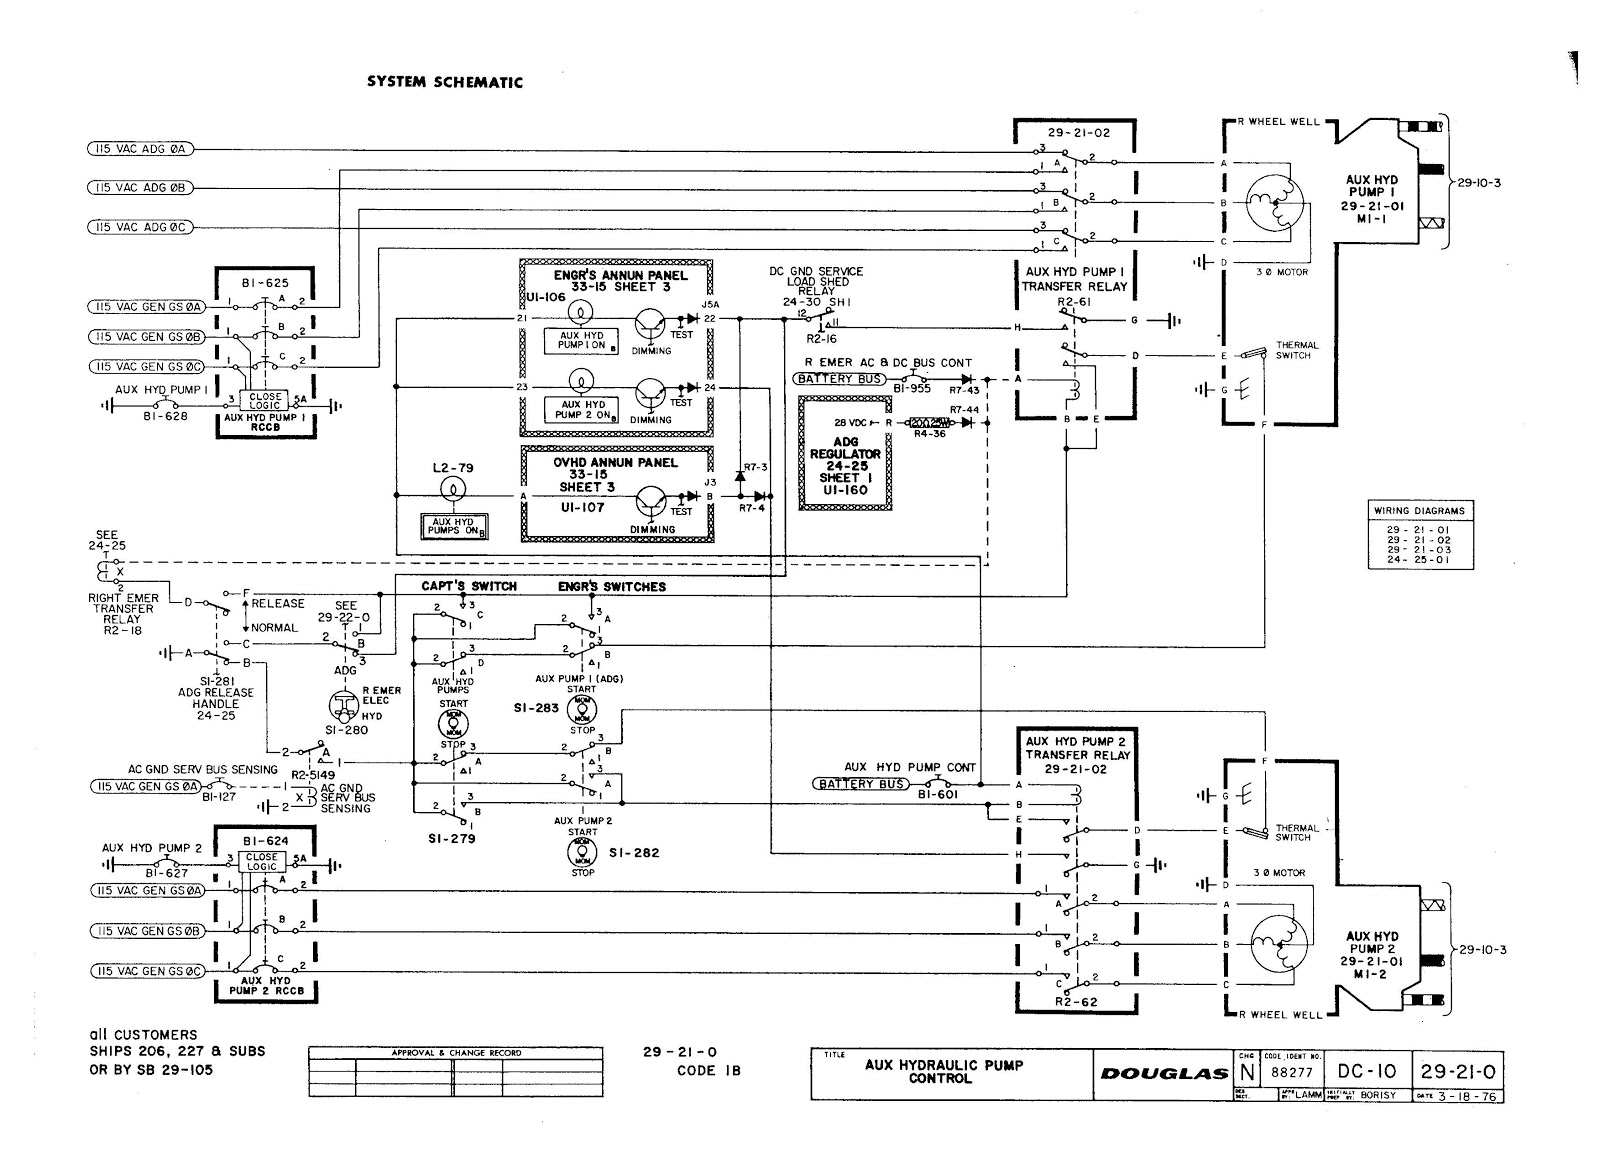 Schematic+diagram+dc+10+hydraulic+001 avionics wiring diagrams mike aircraft wiring diagrams \u2022 wiring base engineering wiring diagrams at soozxer.org